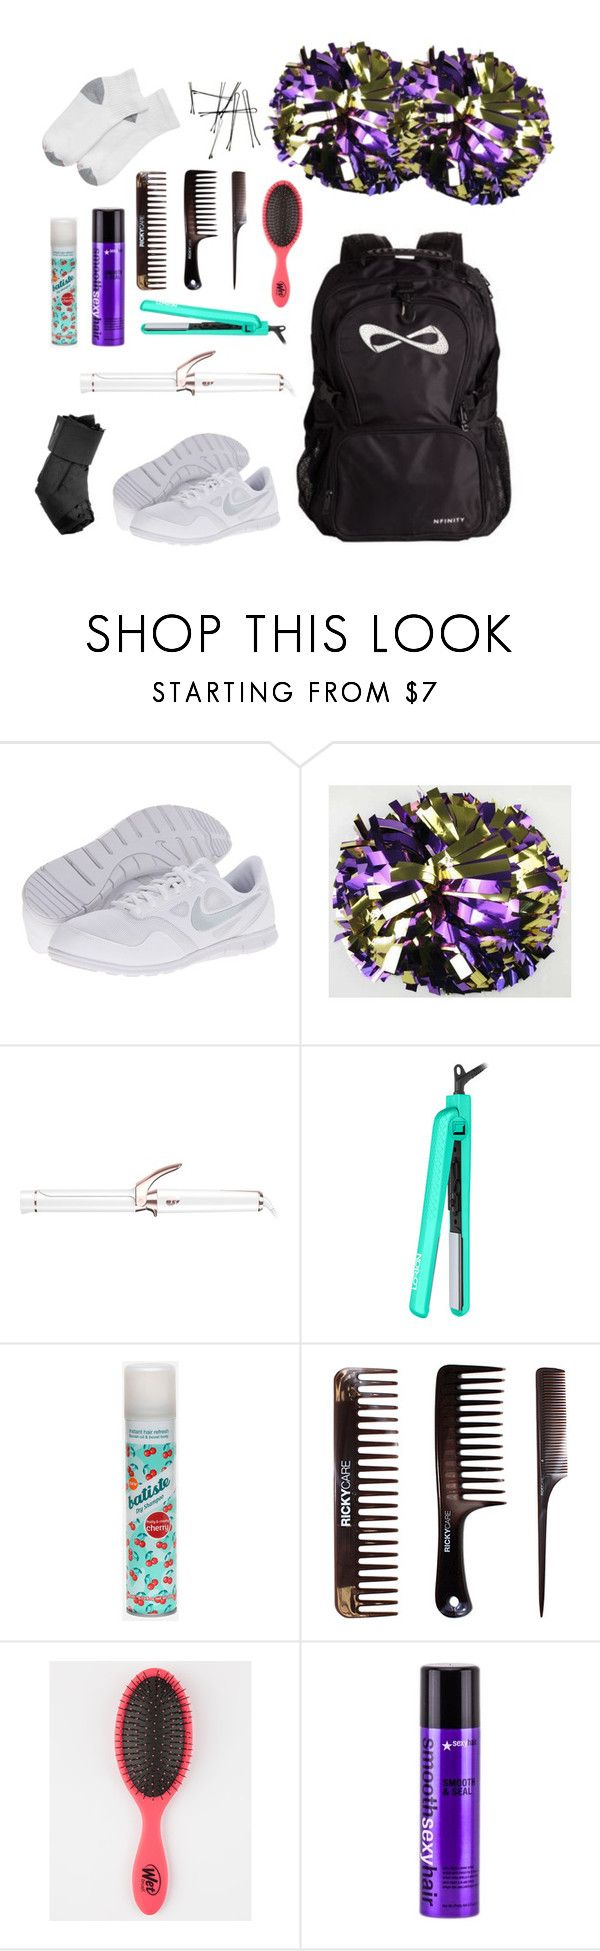 """""""what's in my cheer bag on game day!"""" by libster4404 ❤ liked on Polyvore featuring NIKE, T3, Lorion, Batiste, Sexy Hair and Hanes"""